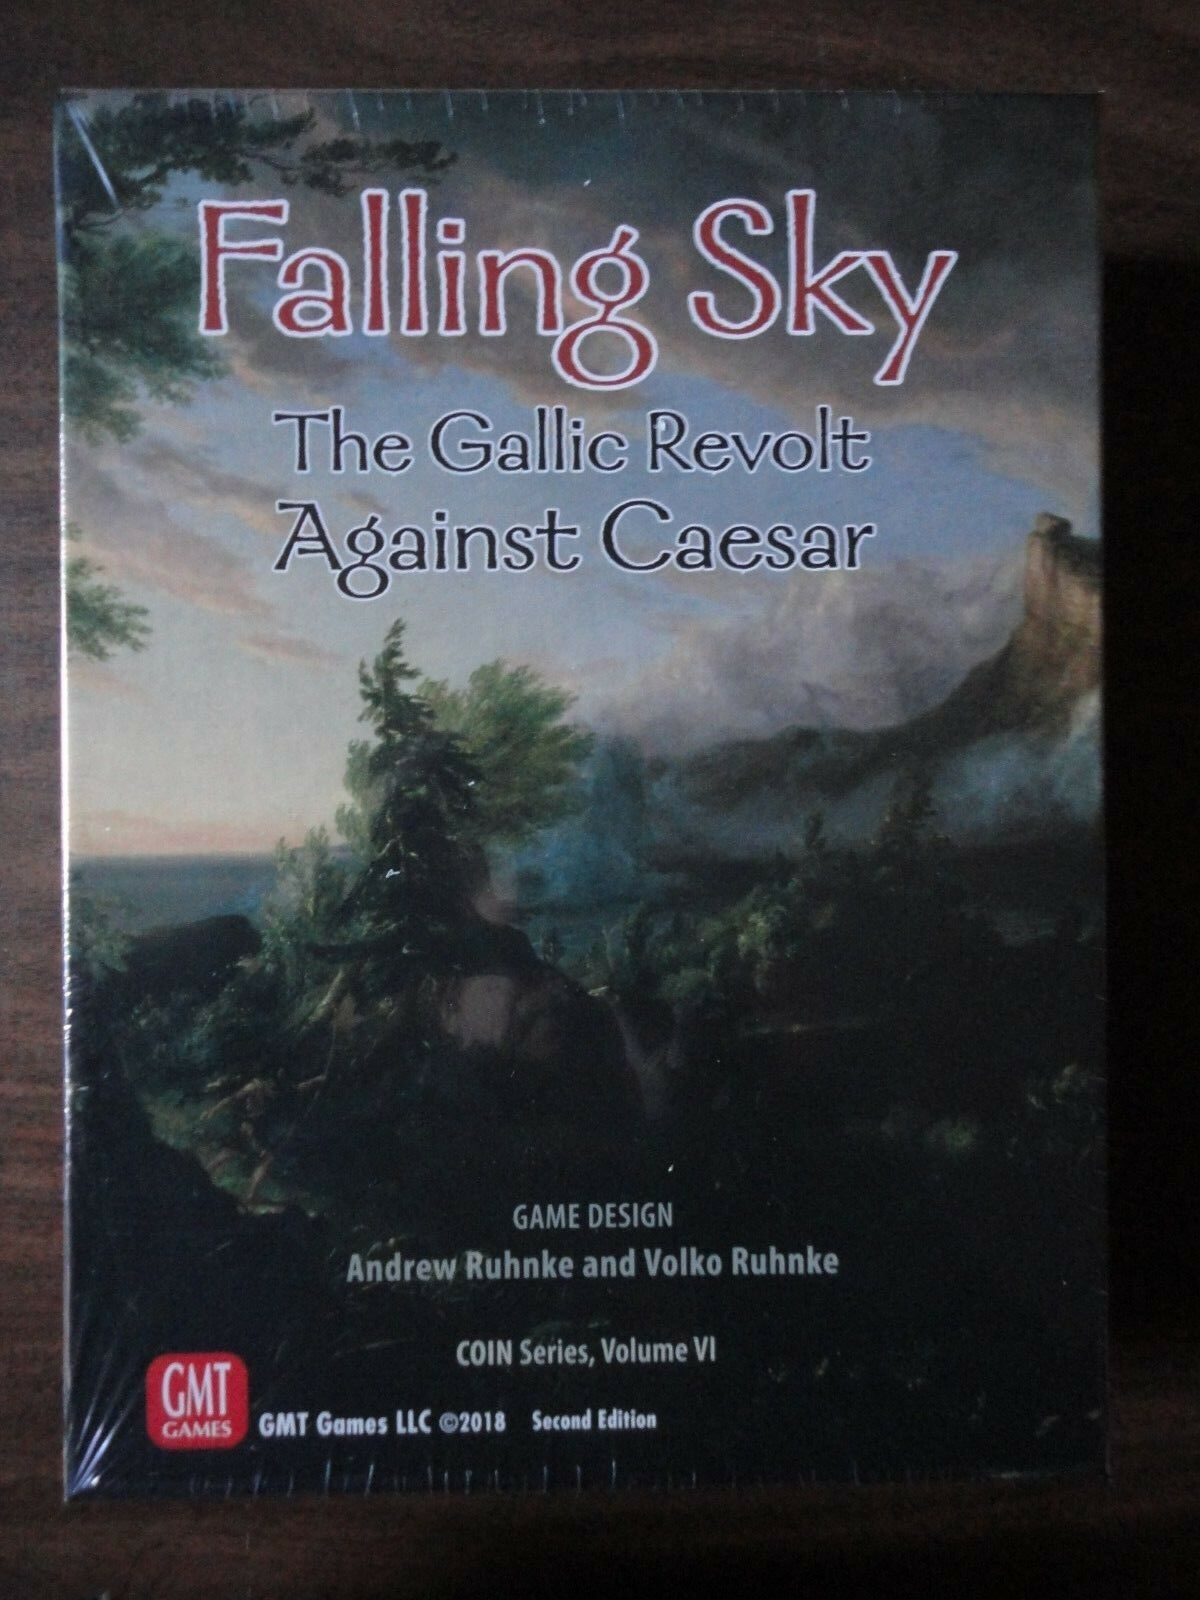 Falling Sky by GMT Games COIN Series Volume VI 2018 2nd Printing mint in shrink